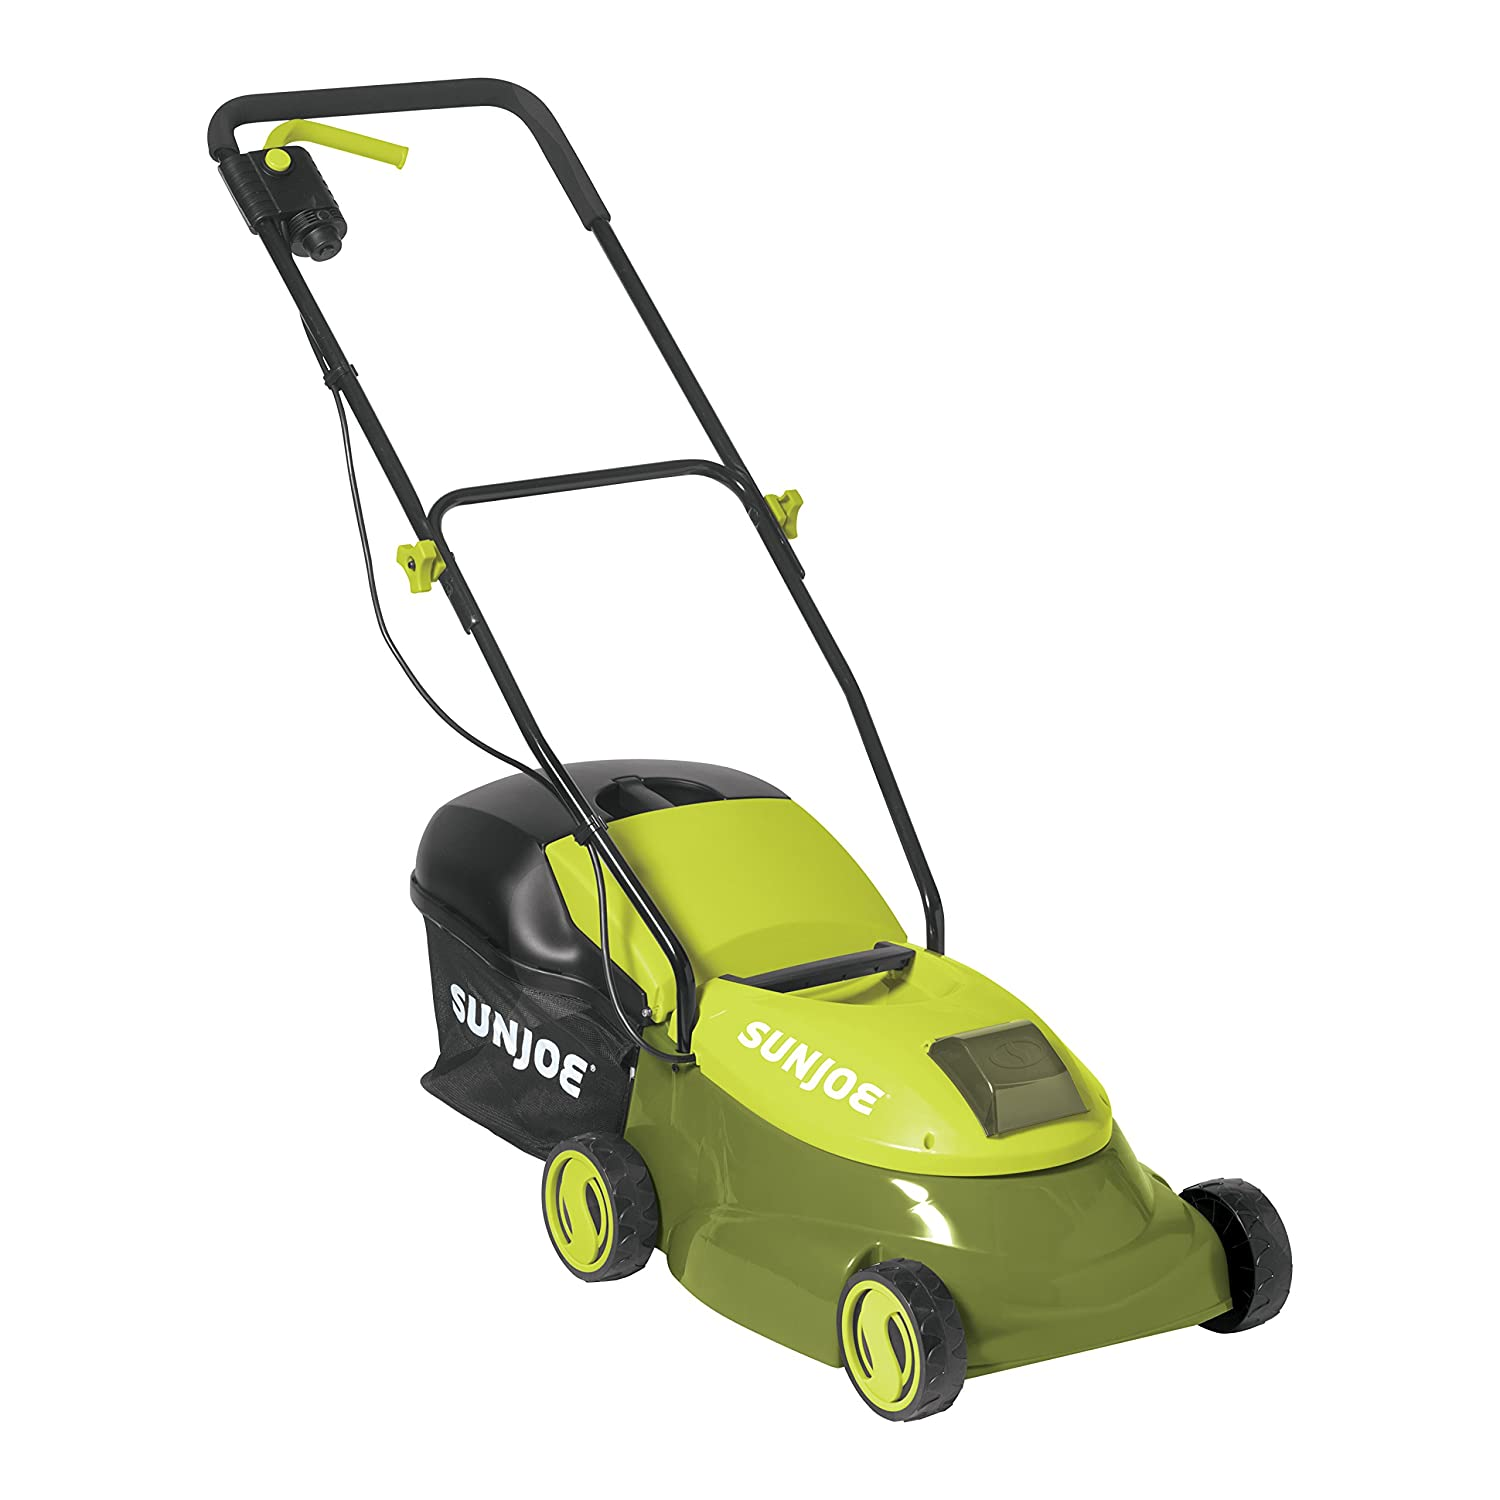 Sun Joe MJ401C 14 in. 28-Volt Cordless Electric Lawn Mower